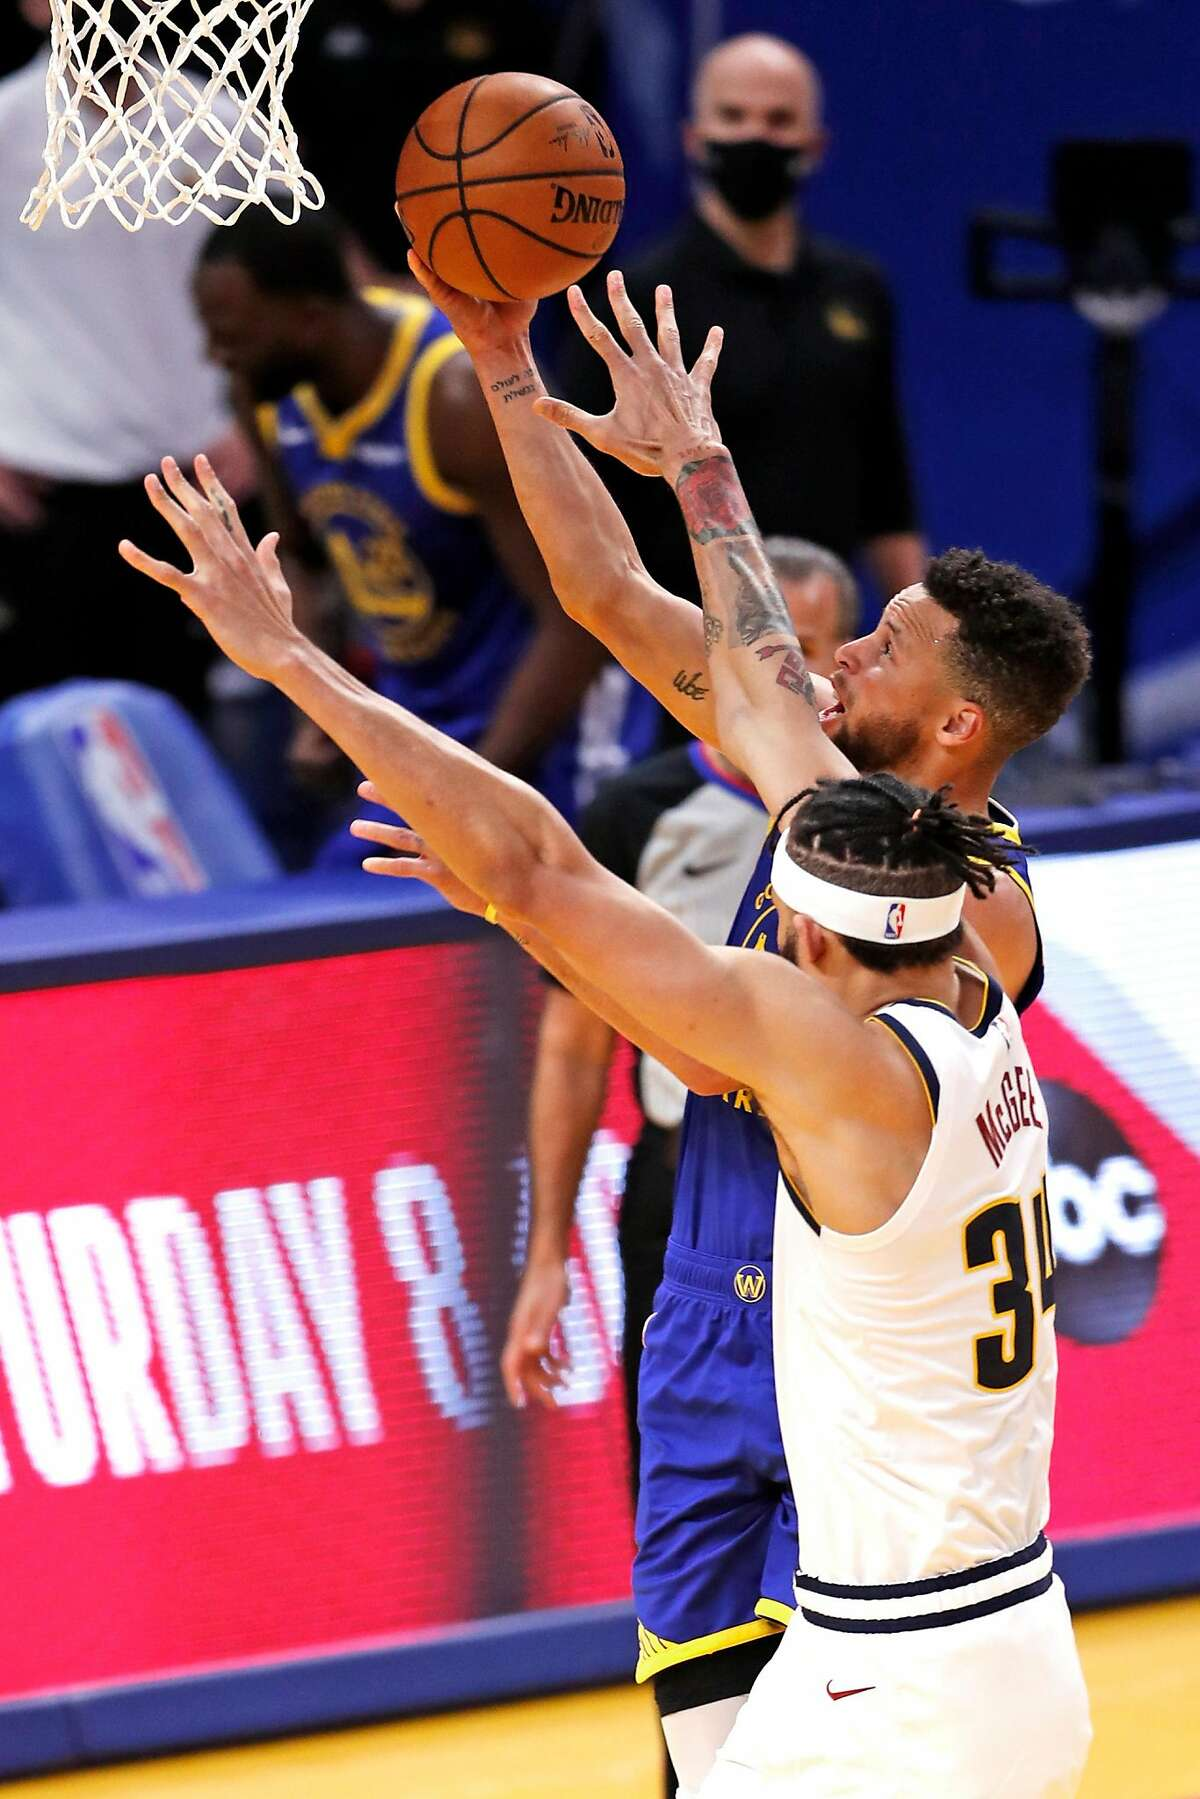 Golden State Warriors' Stephen Curry scores a basket against Denver Nuggets' JaVale McGee, passing Wilt Chamberlain for most points in franchise history, during 1st quarter of NBA game at Chase Center in San Francisco, Calif., on Monday, April 12, 2021.